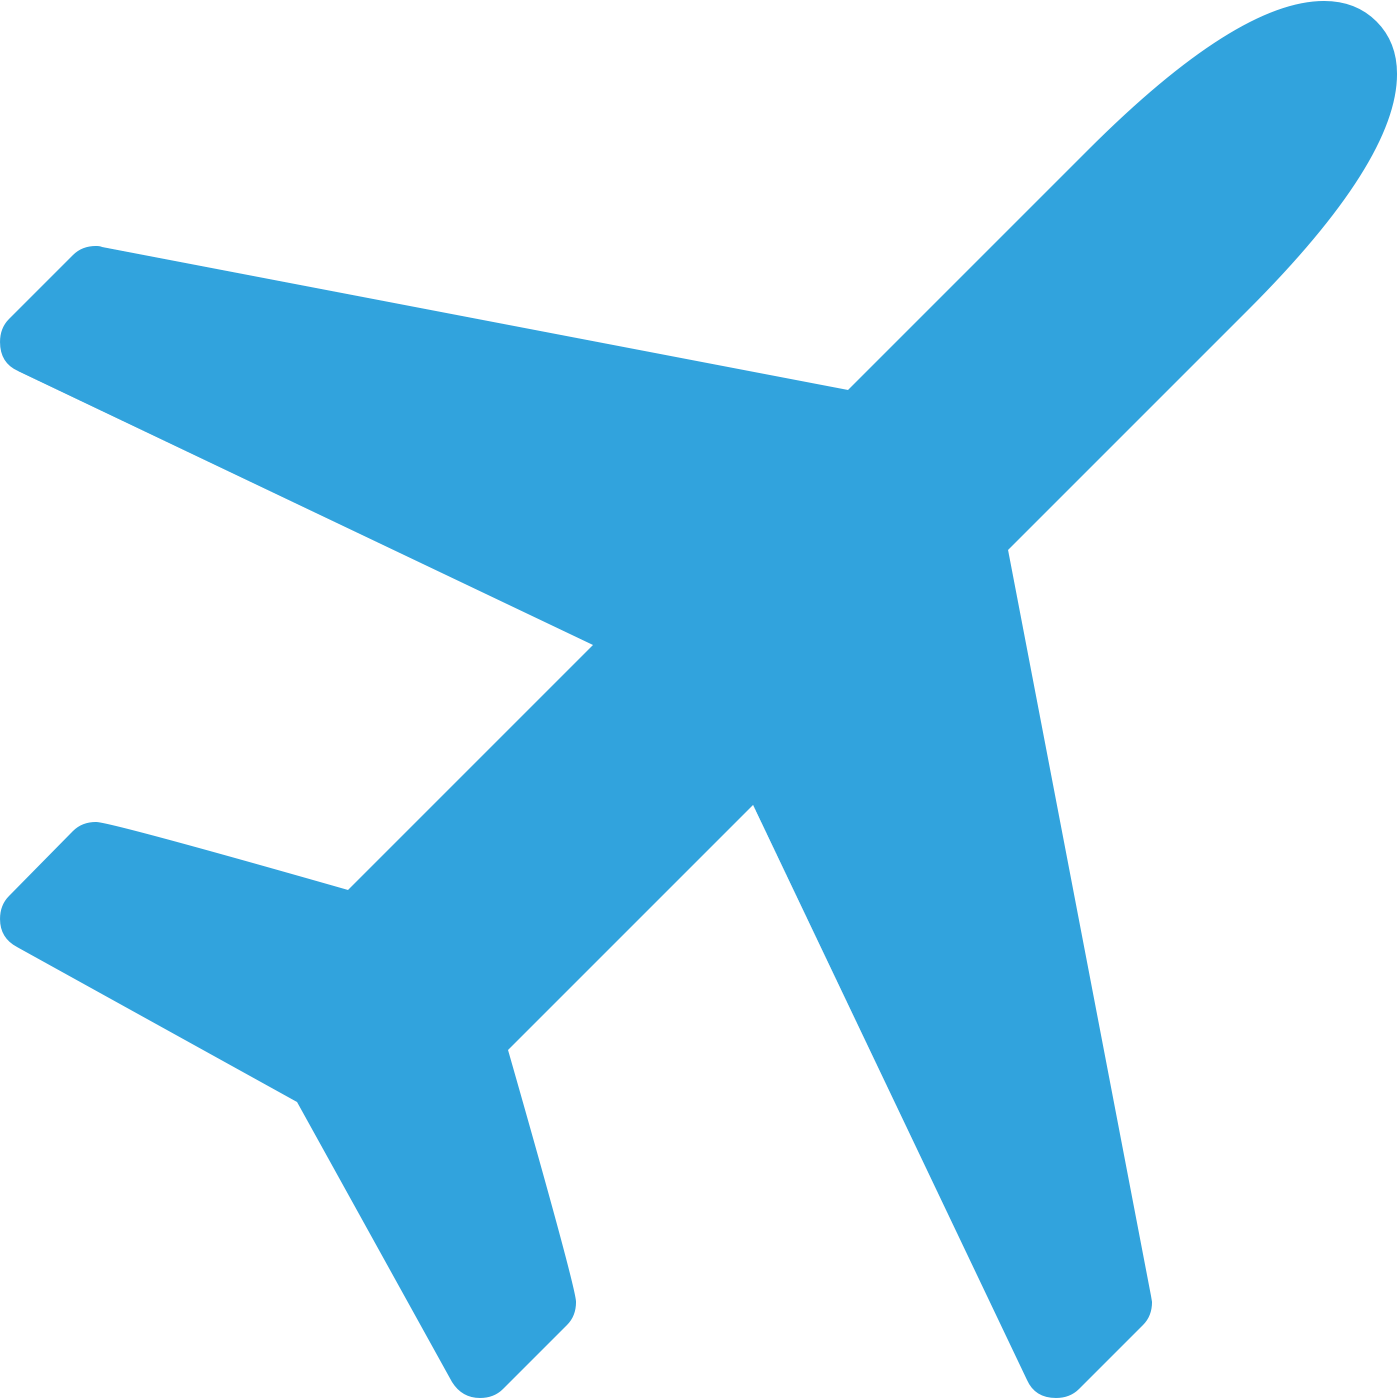 Download Icon Airplane Icon Blue Png Png Image With No Background Pngkey Com